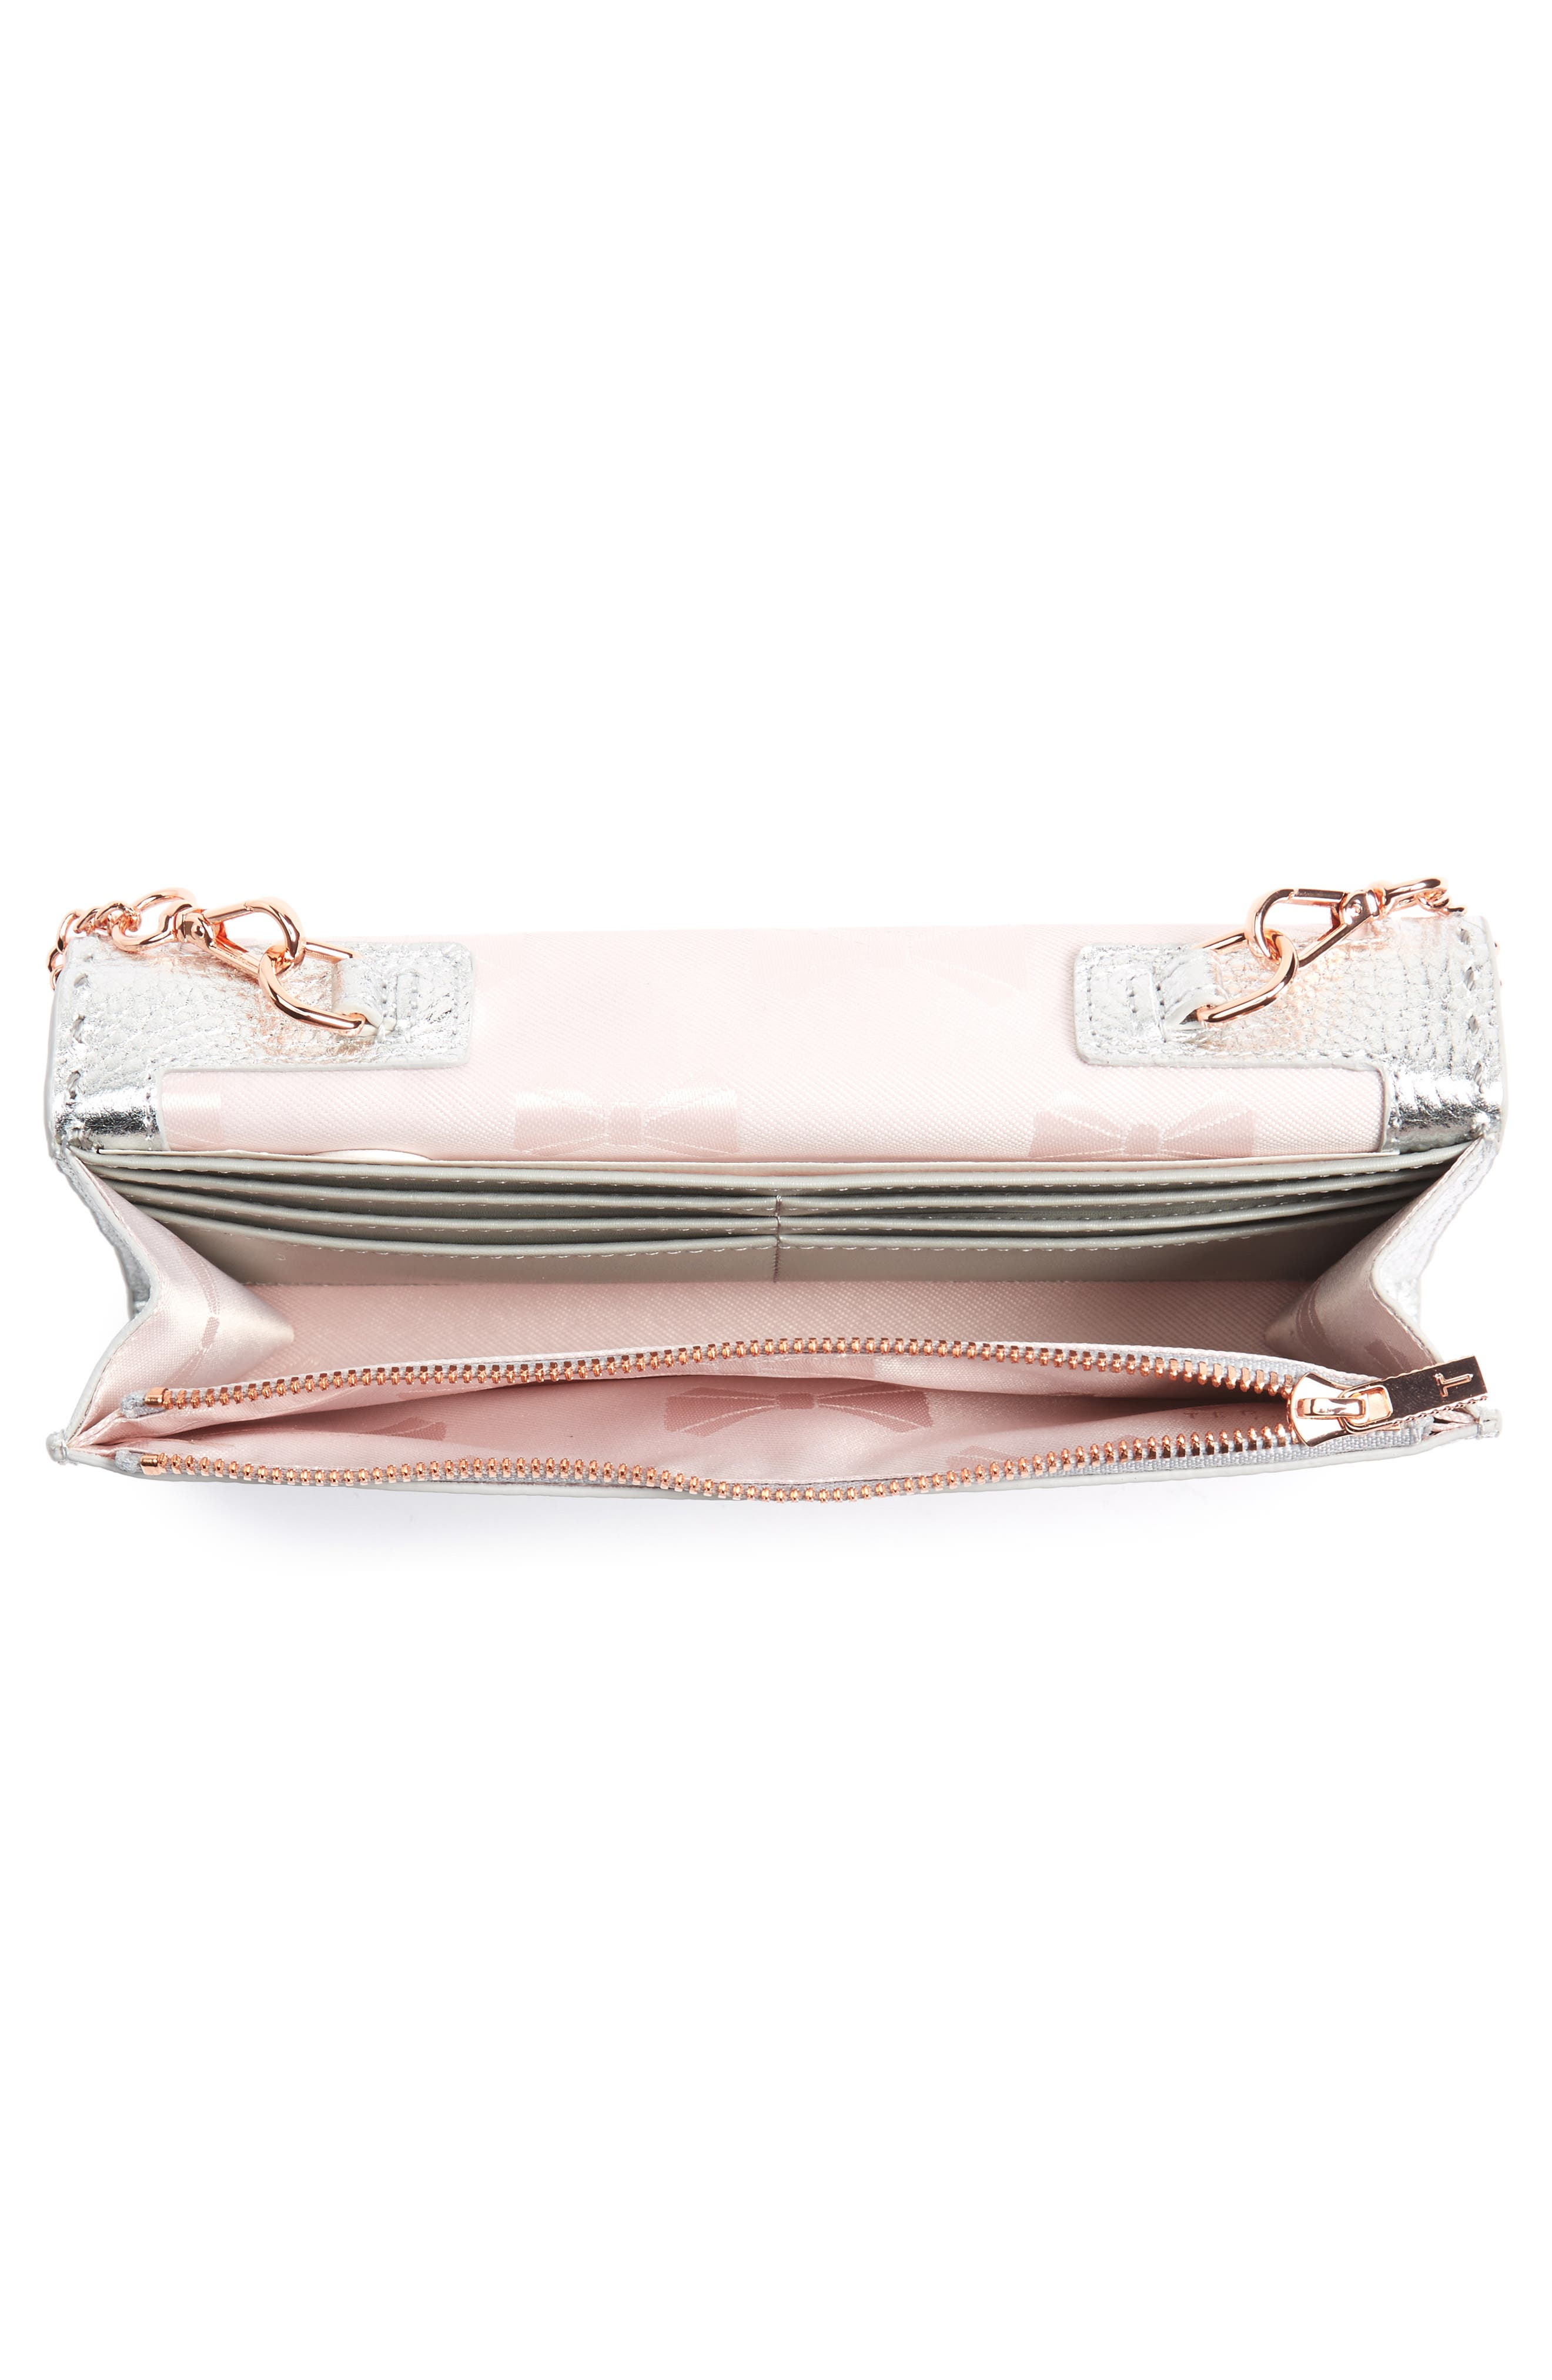 Janet Metallic Leather Crossbody Matinée Wallet on a Chain,                             Alternate thumbnail 4, color,                             040